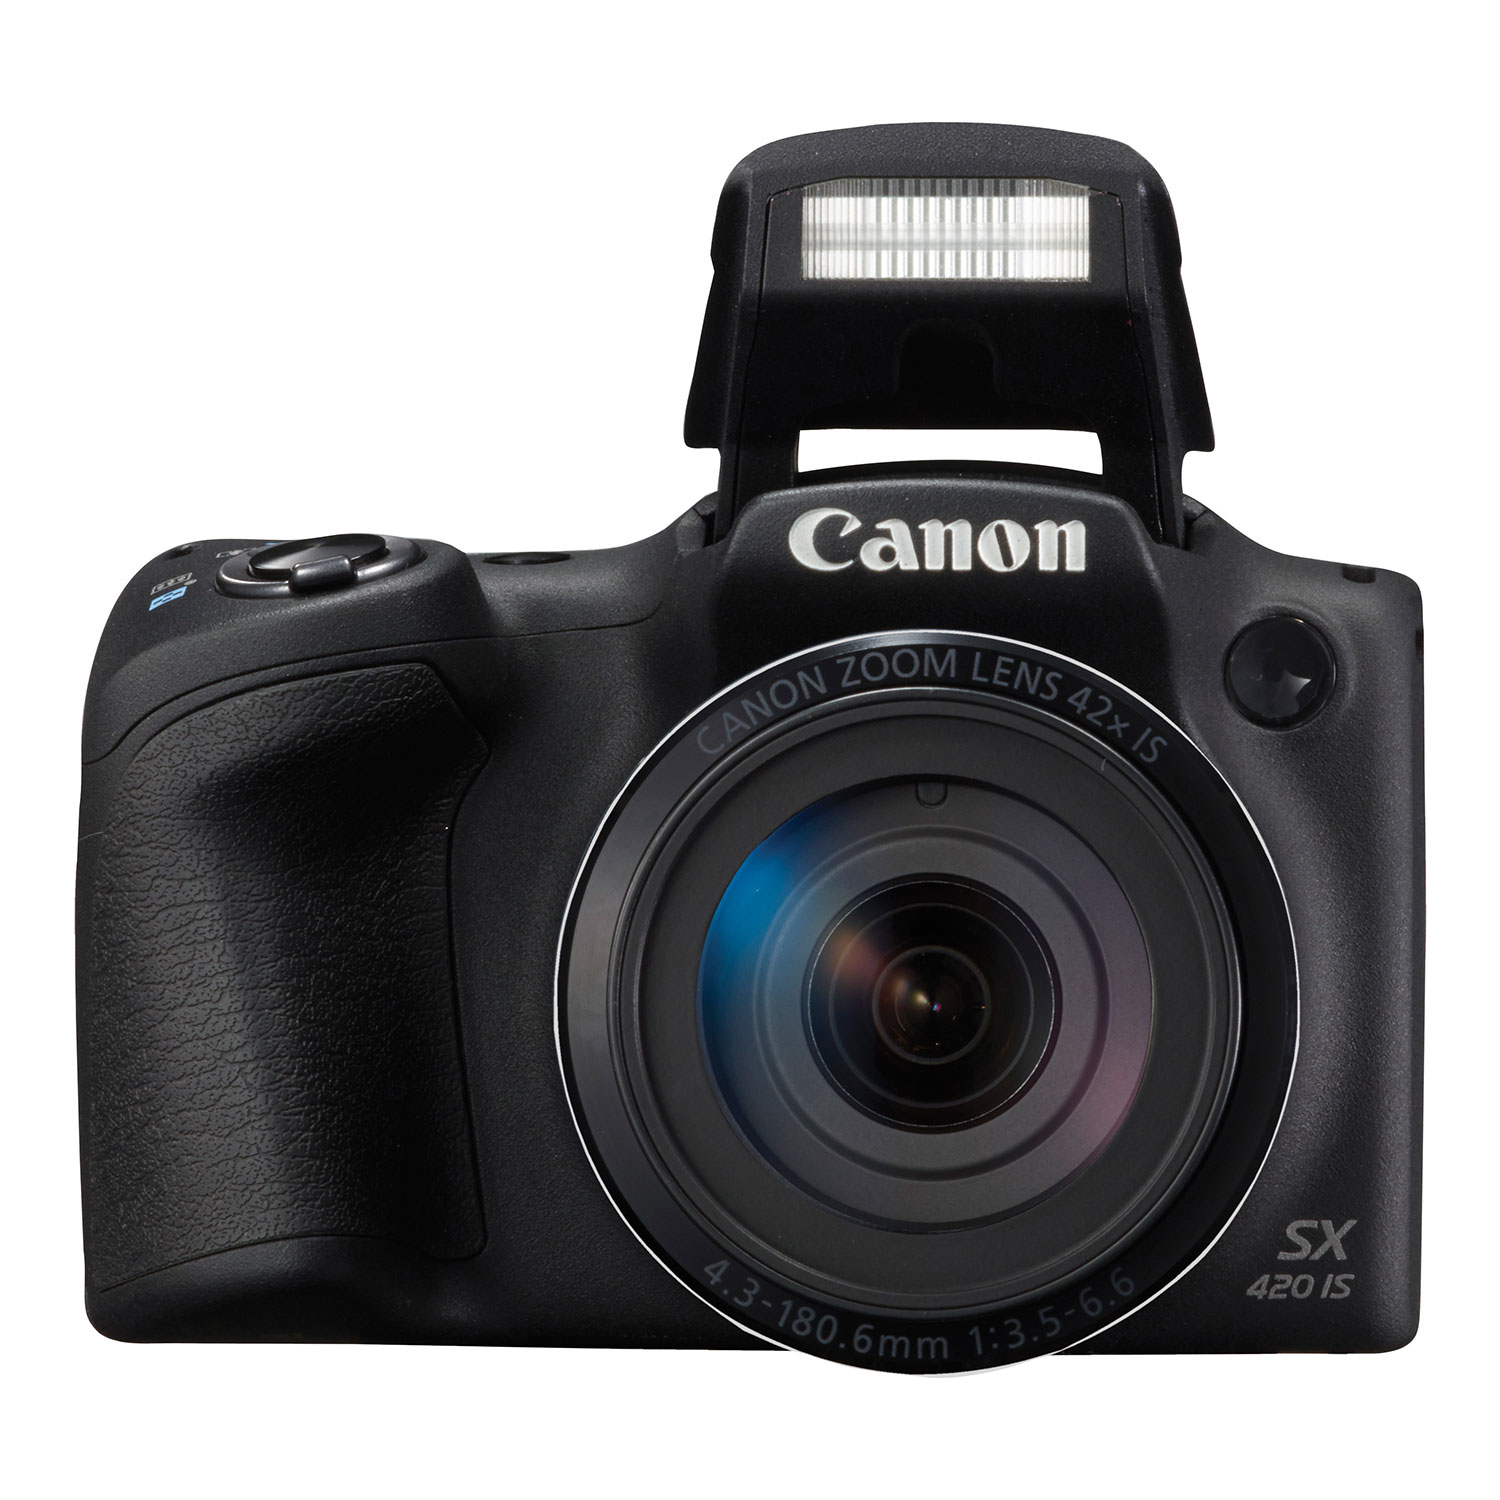 Canon Powershot Sx420 Is Wifi 200mp 42x Optical Zoom Digital Camera 740 Black Point And Shoot Cameras Best Buy Canada